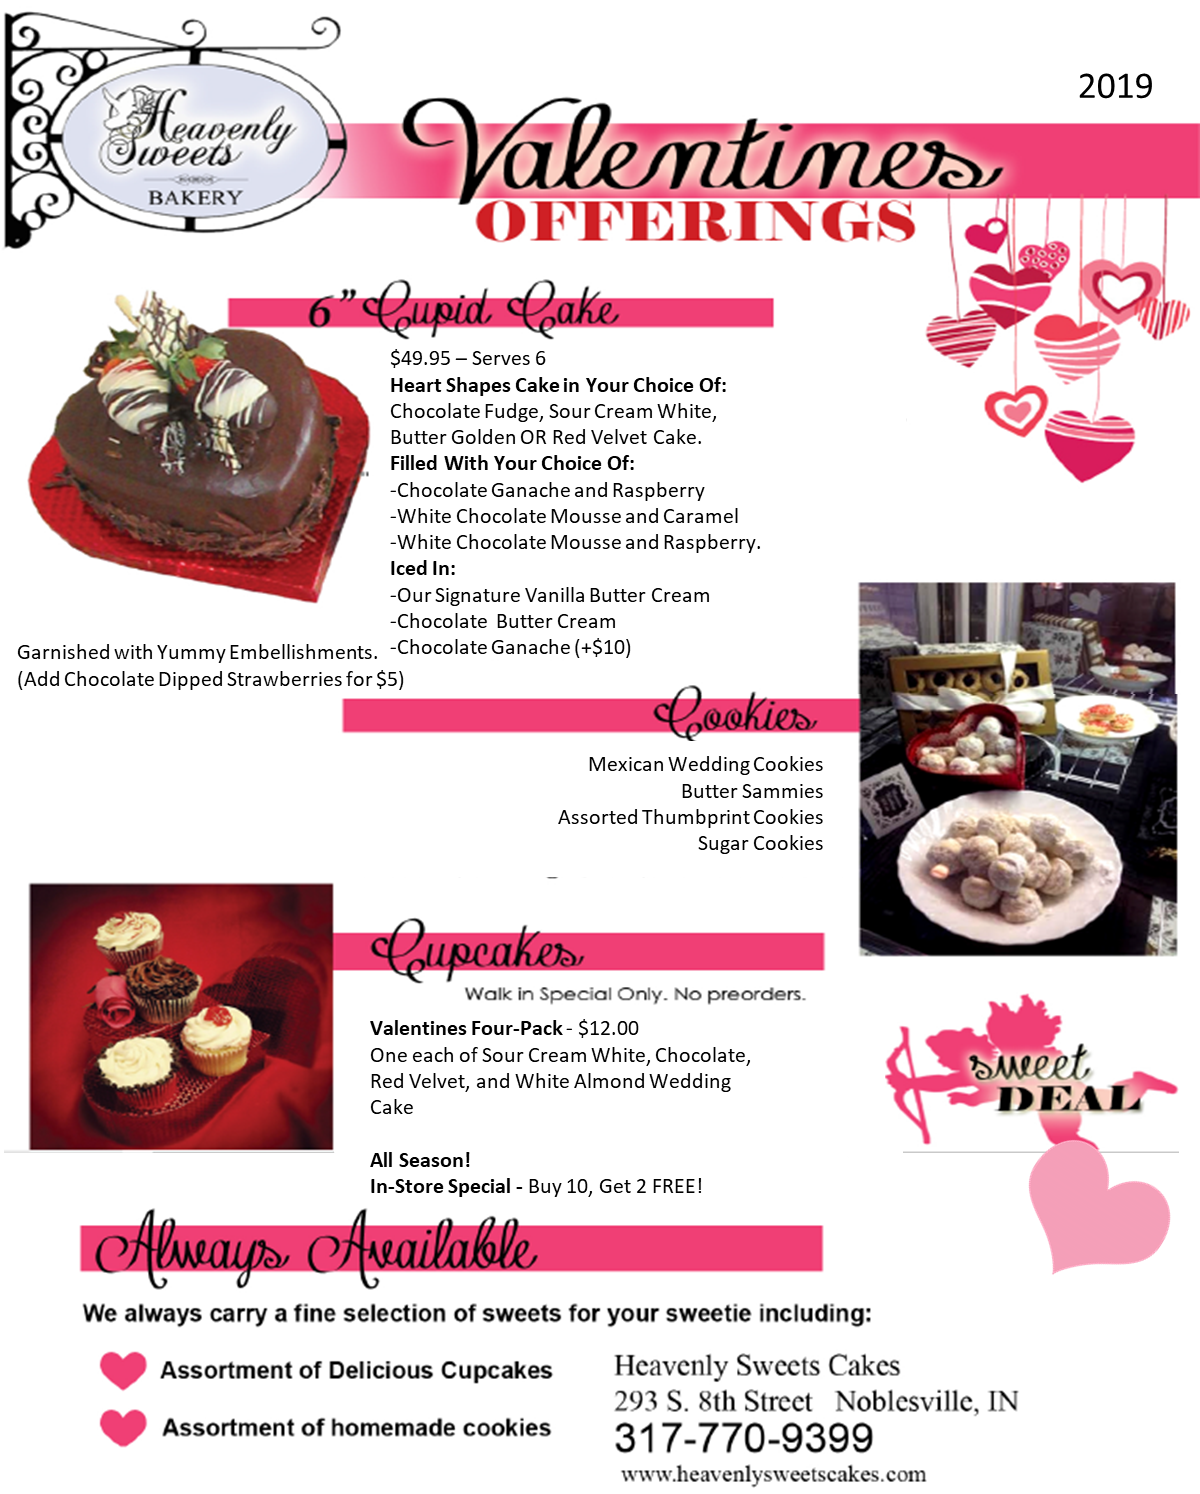 VALENTINES OFFERINGS 2019